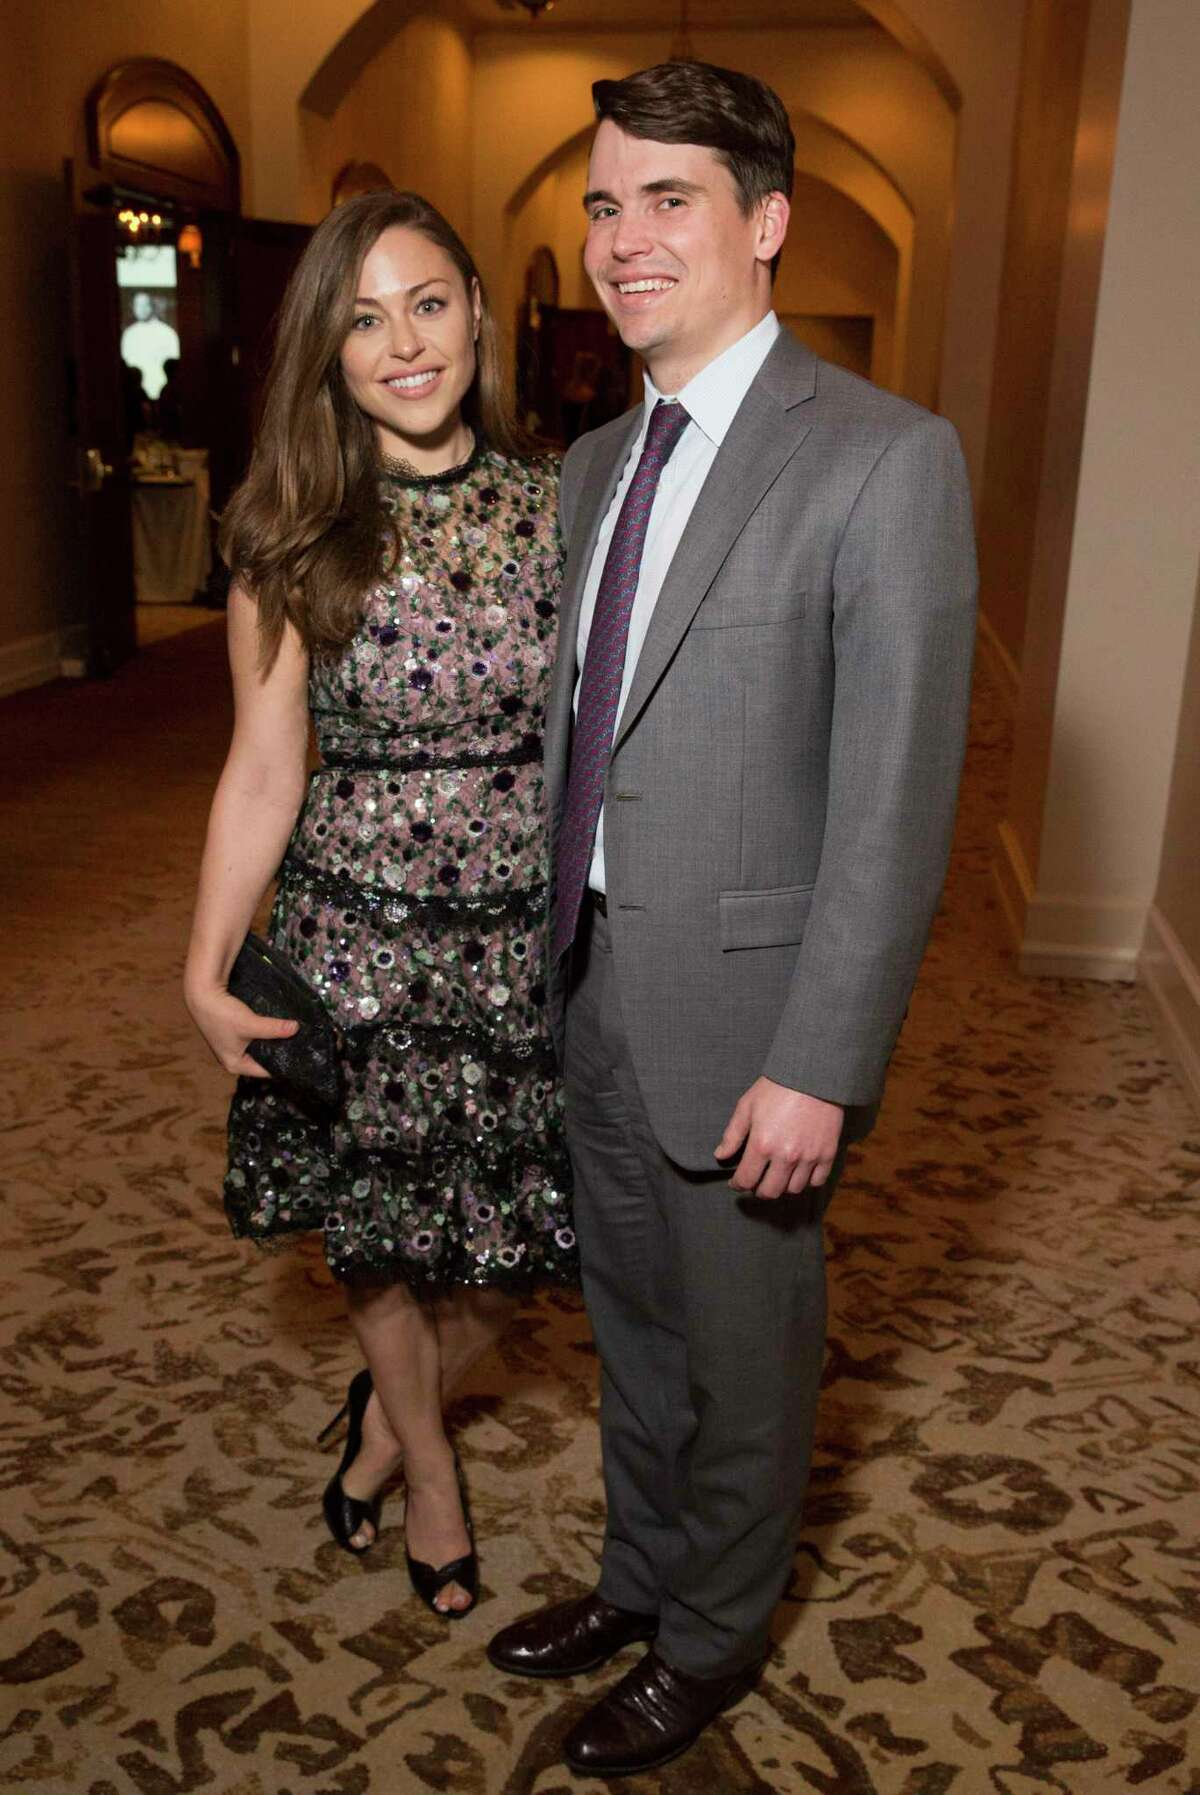 Lexi Sakowitz and Mike Marek pose for a photograph at 19th Annual Chef's Dinner at Houstonian Hotel on Wednesday, April 17, 2019, in Houston.